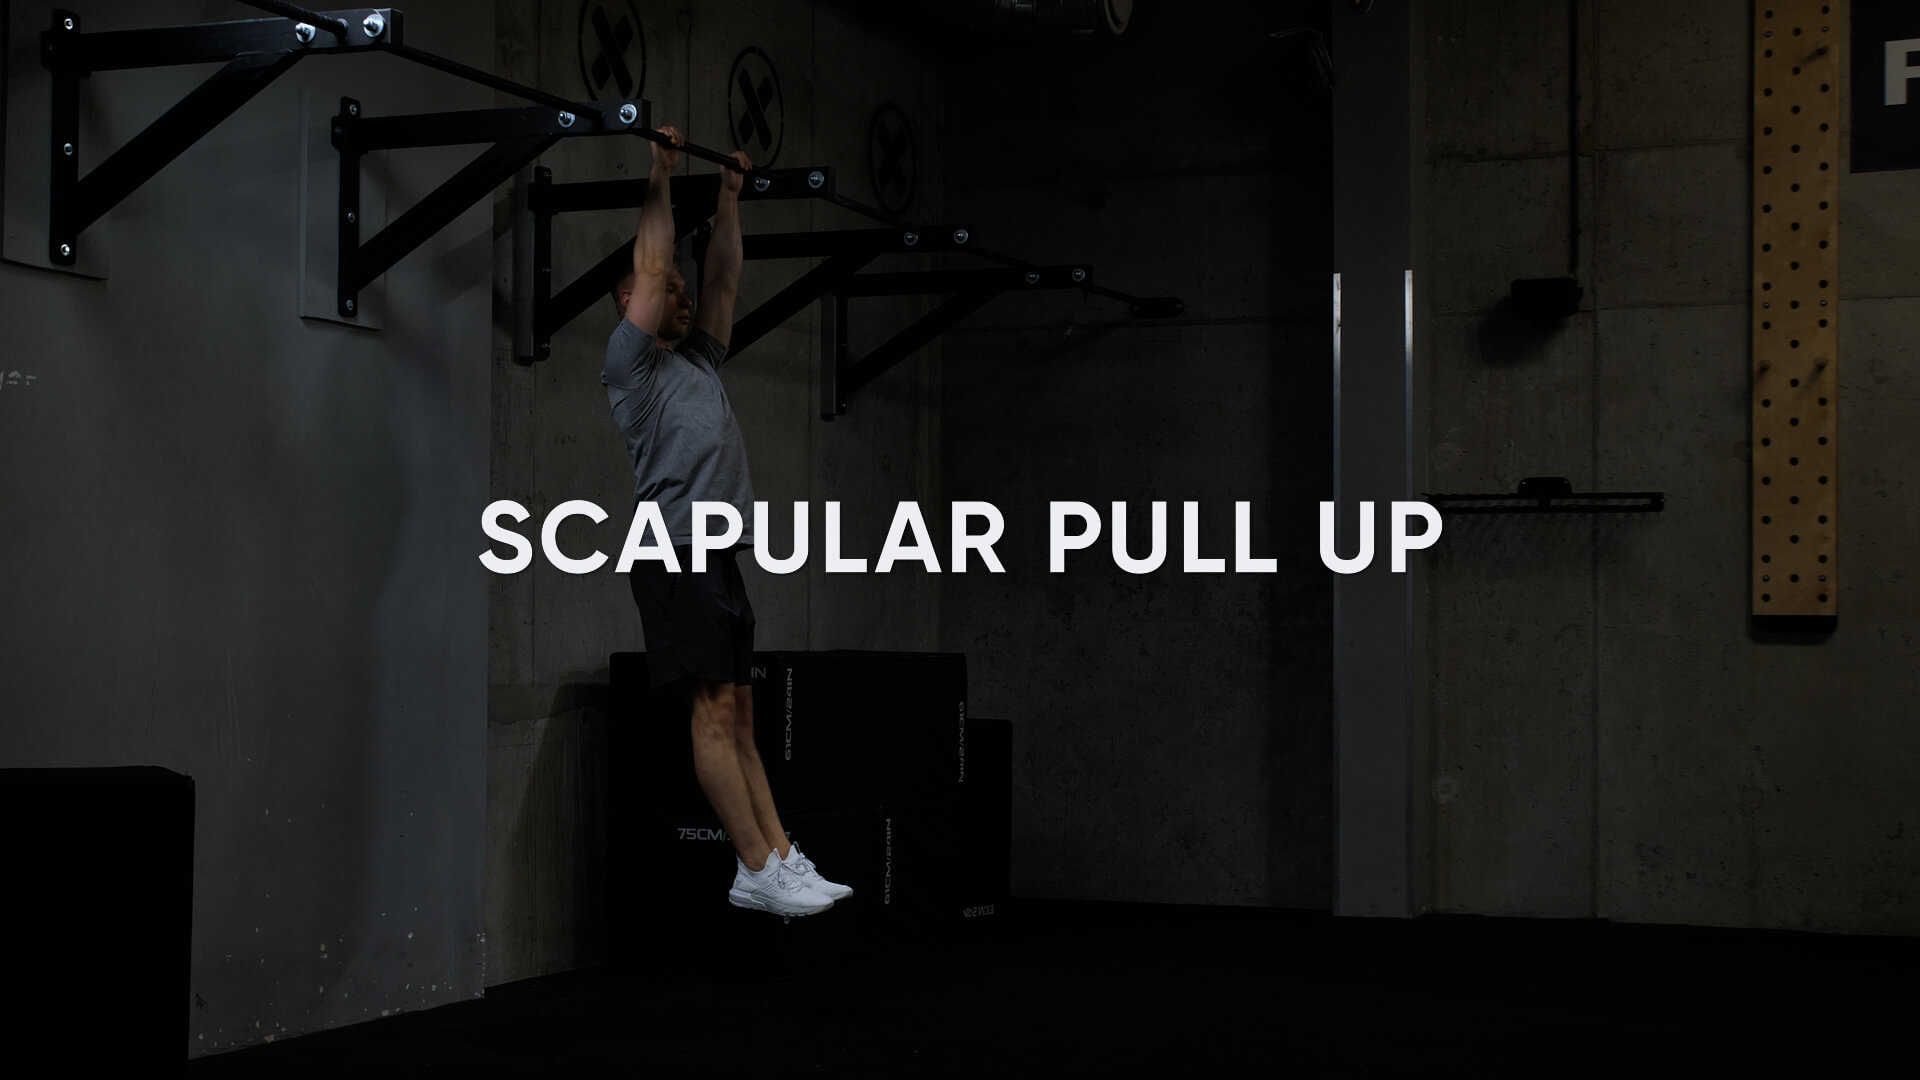 Scapular Pull Up